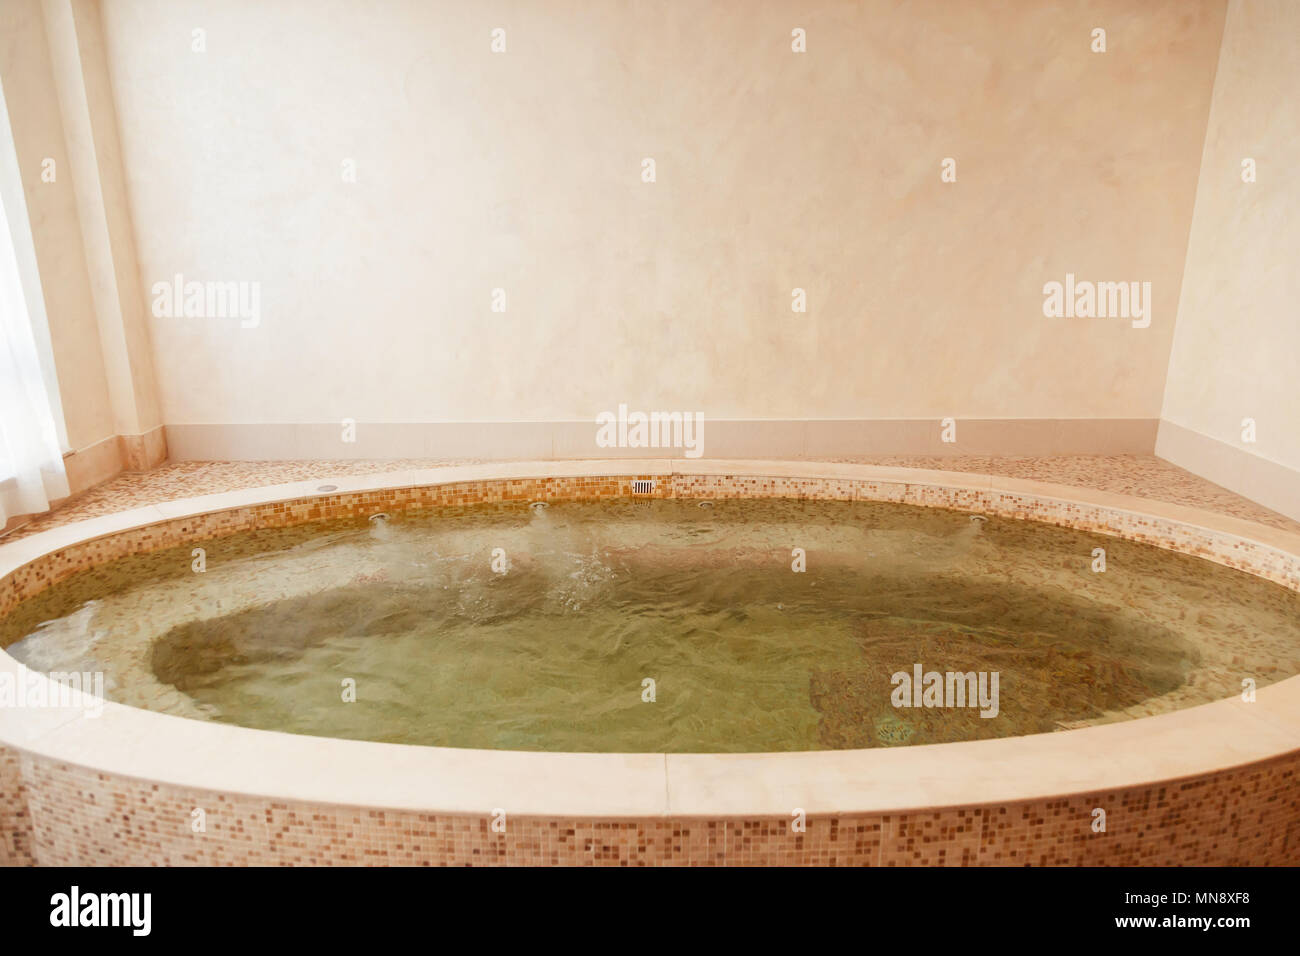 Jacuzzi baths in hotel spa center Stock Photo: 185207884 - Alamy